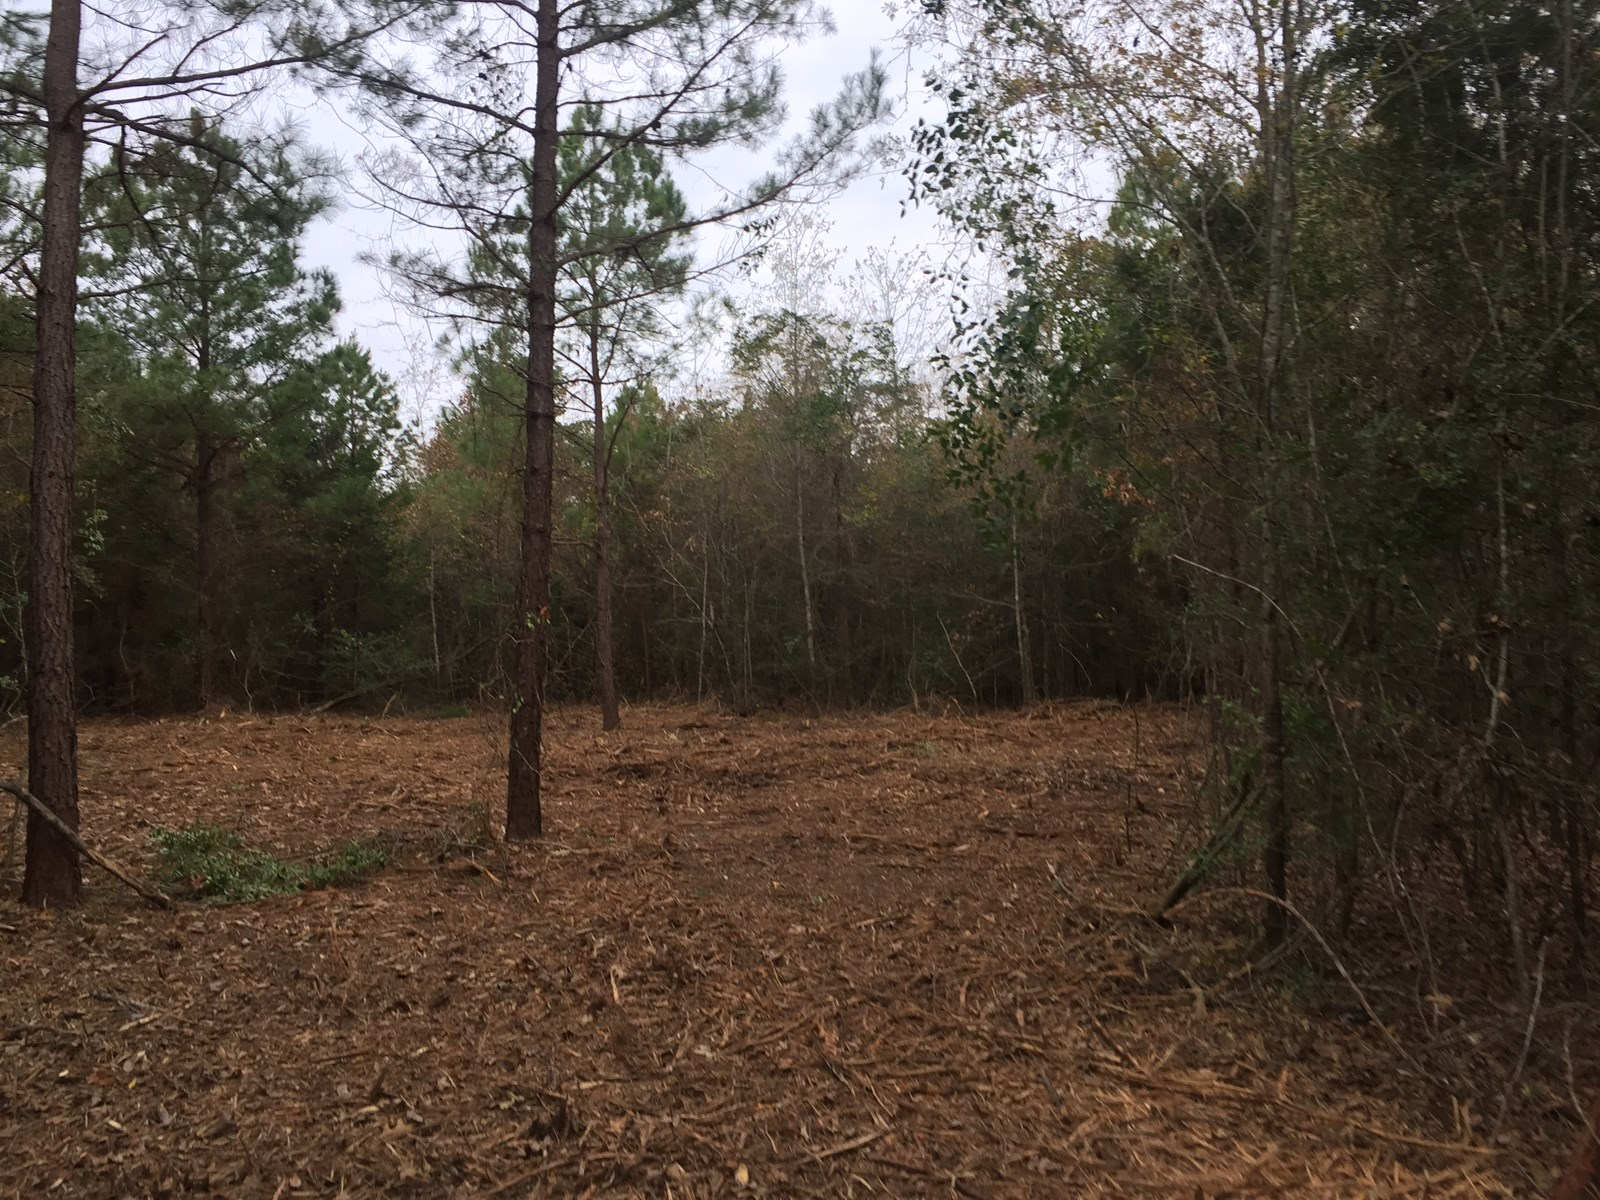 East Texas Land / Hunting/ Home site for sale.